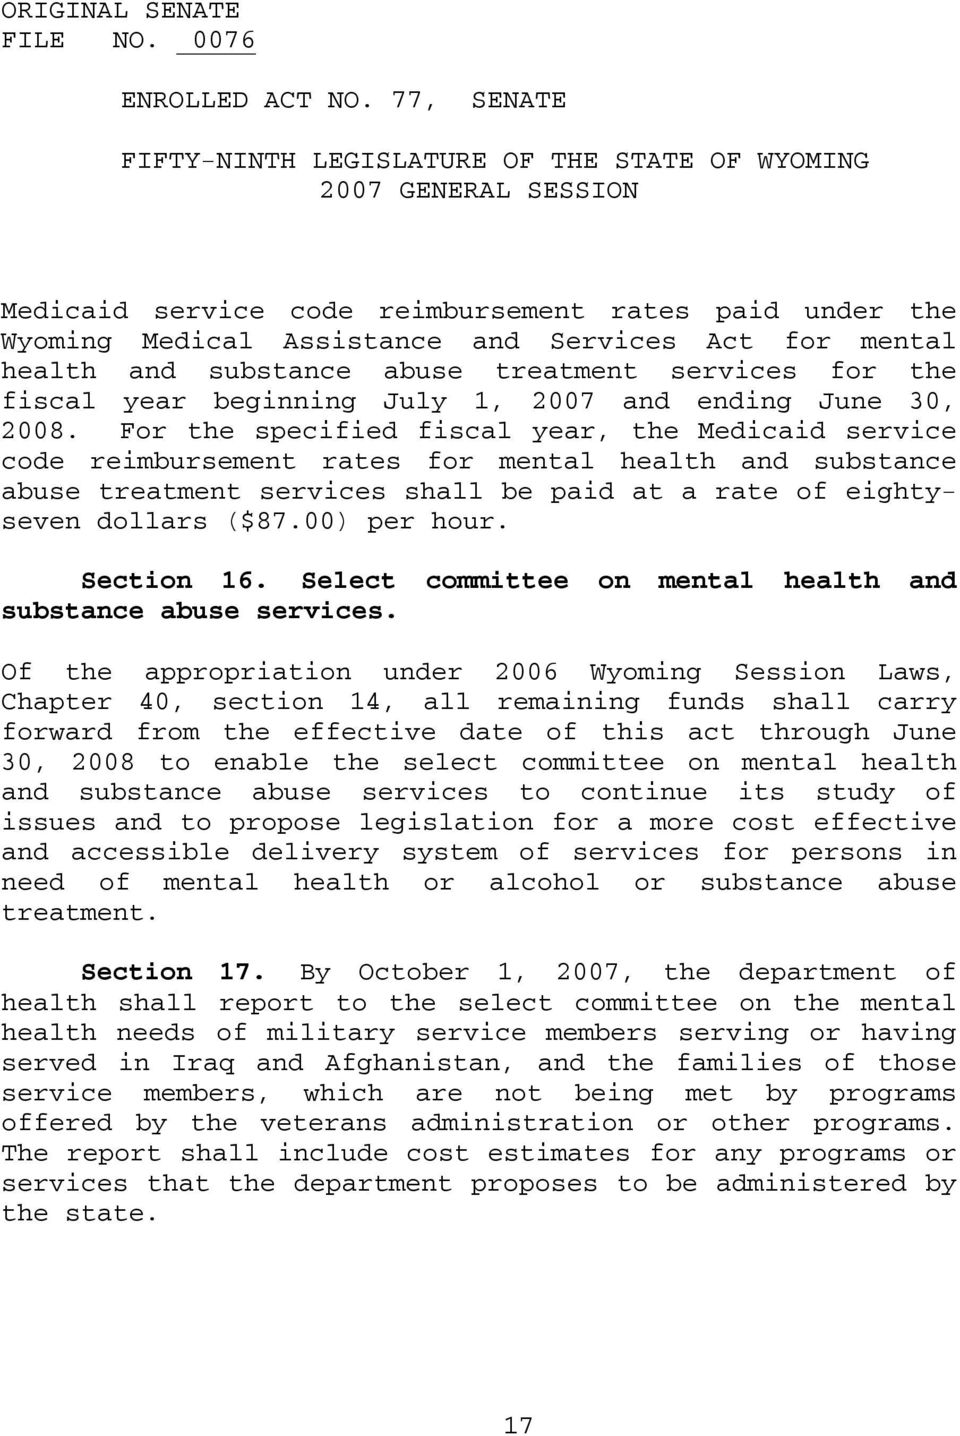 For the specified fiscal year, the Medicaid service code reimbursement rates for mental health and substance abuse treatment services shall be paid at a rate of eightyseven dollars ($87.00) per hour.